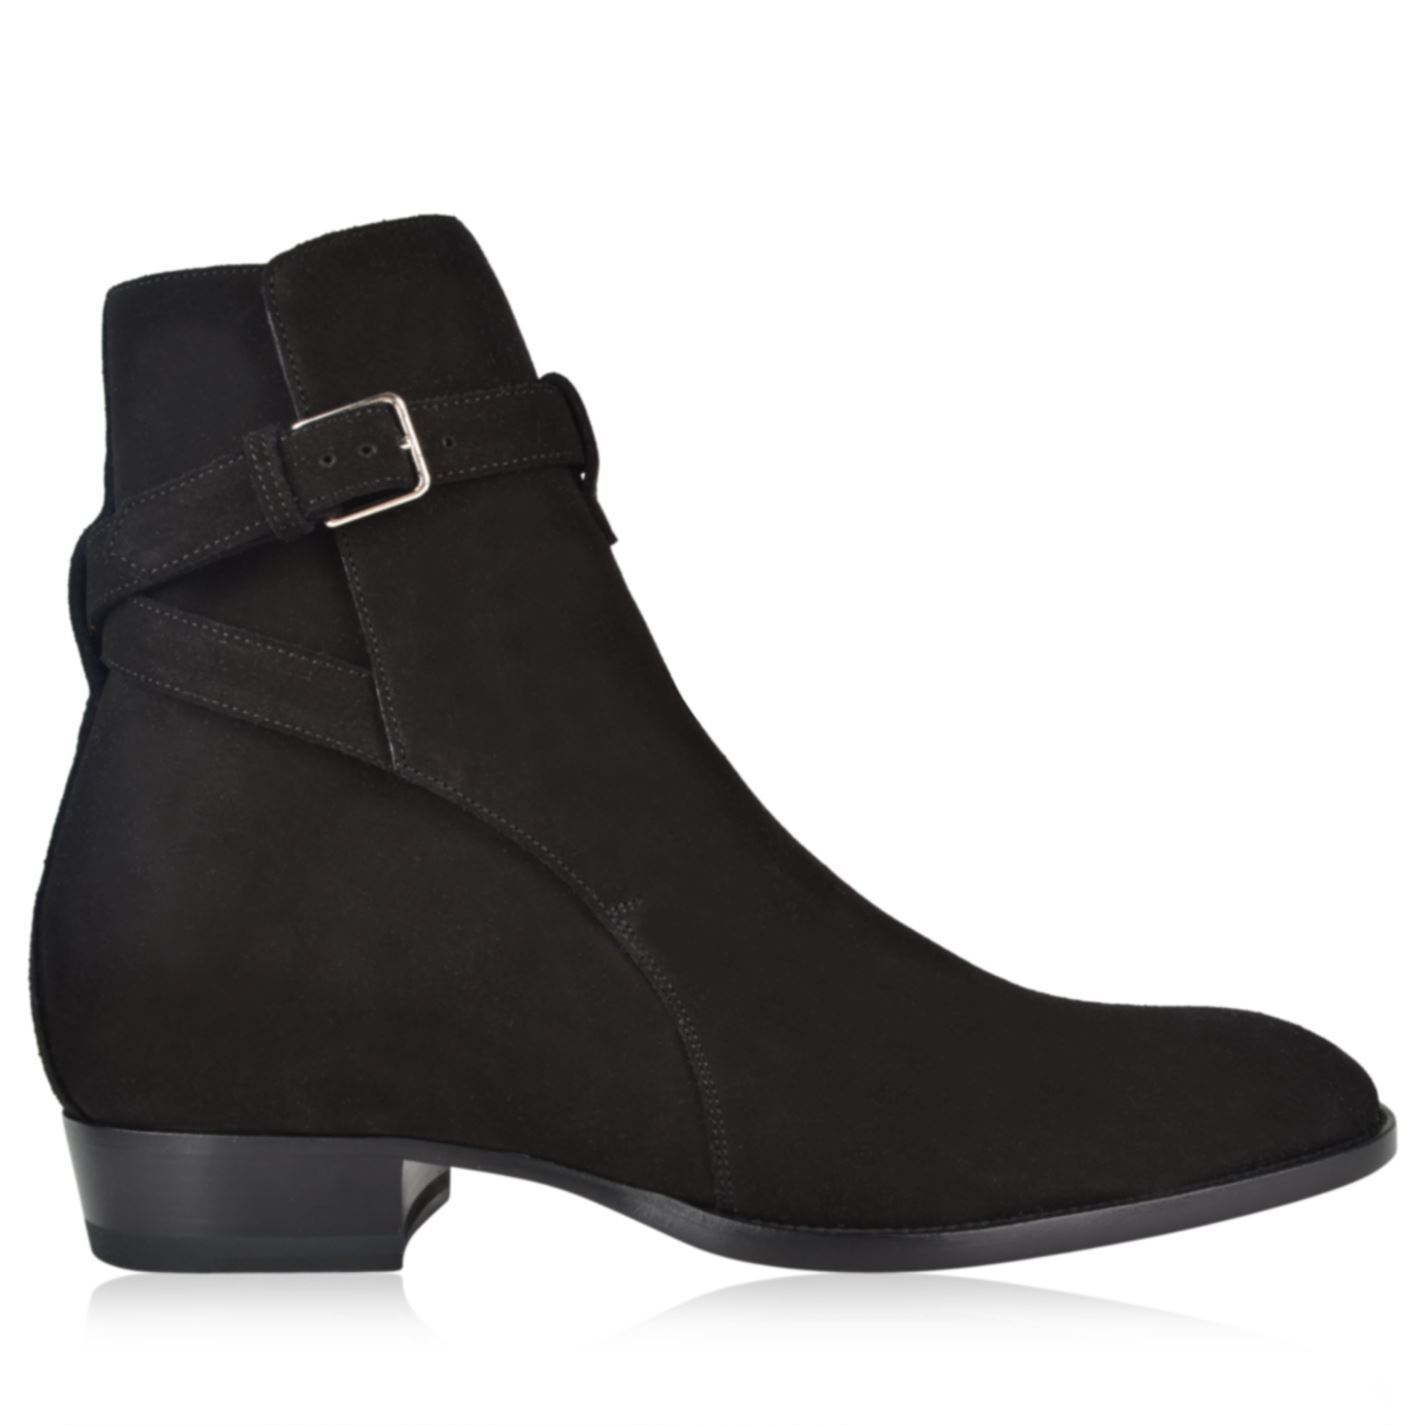 【SAINT LAURENT】WYATT 30 JODHPUR ANKLE BOOTS スエード